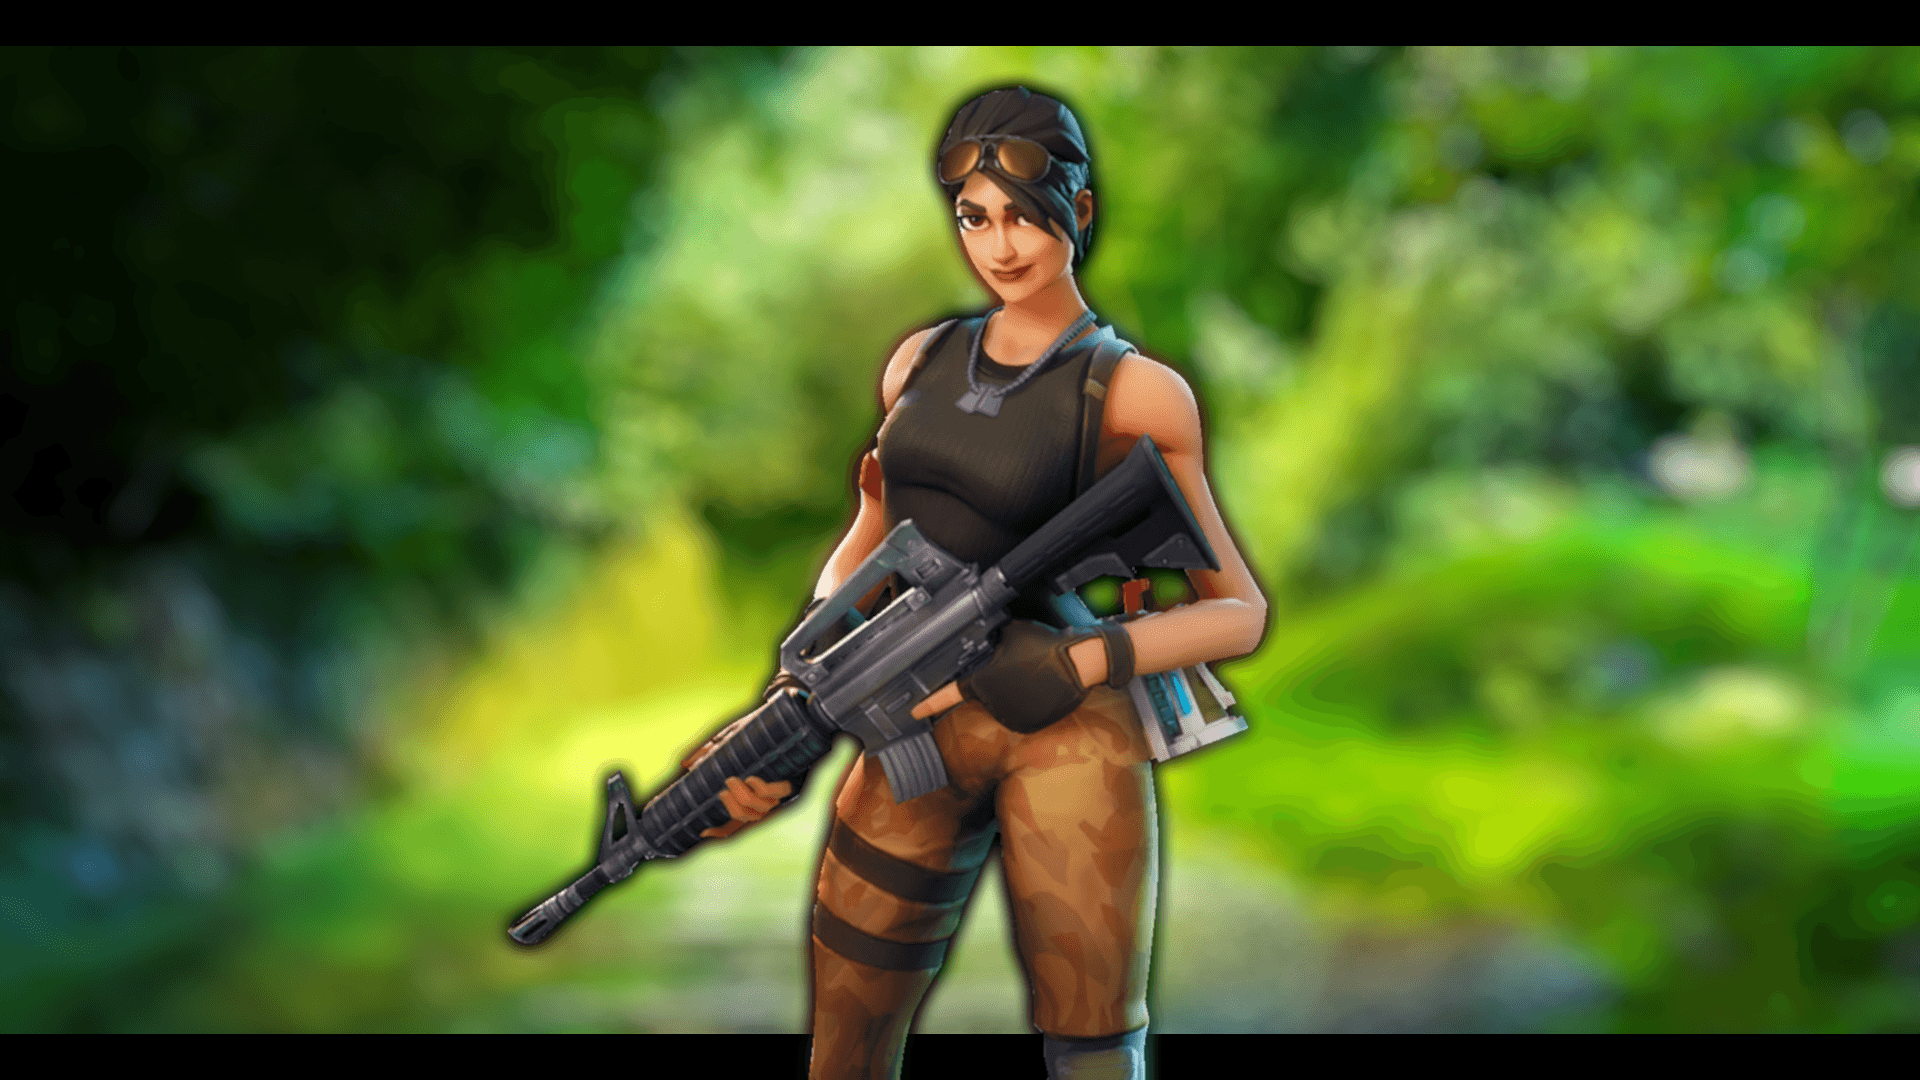 Fortnite Soldier Wallpapers - Top Free Fortnite Soldier ...